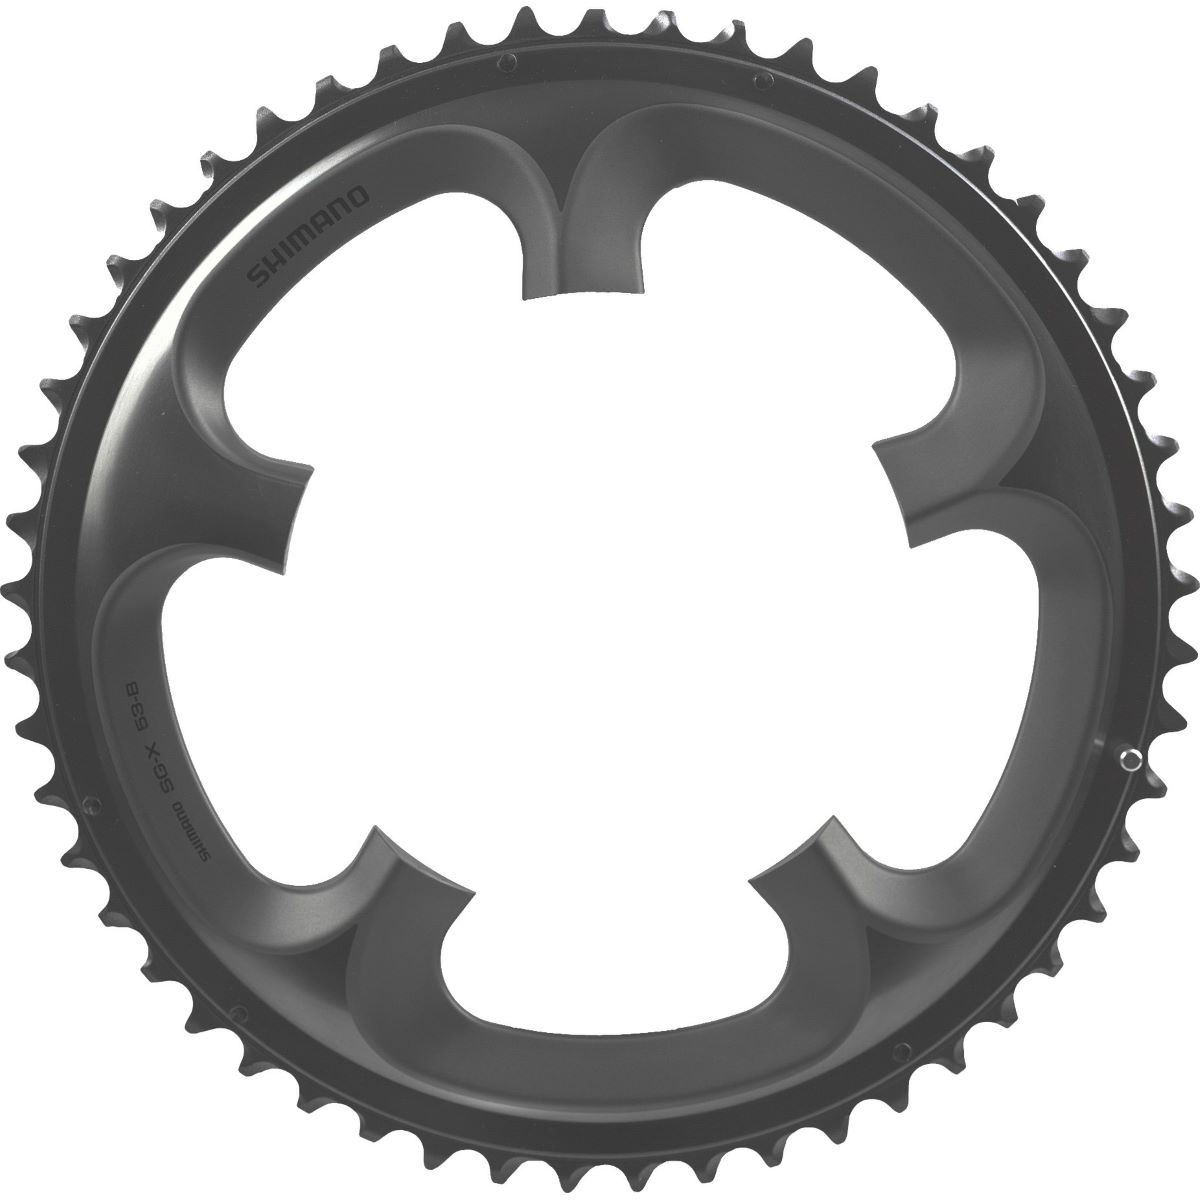 Shimano Ultegra Fc6700 10sp Double Chainrings - 53t 10 Speed Grey